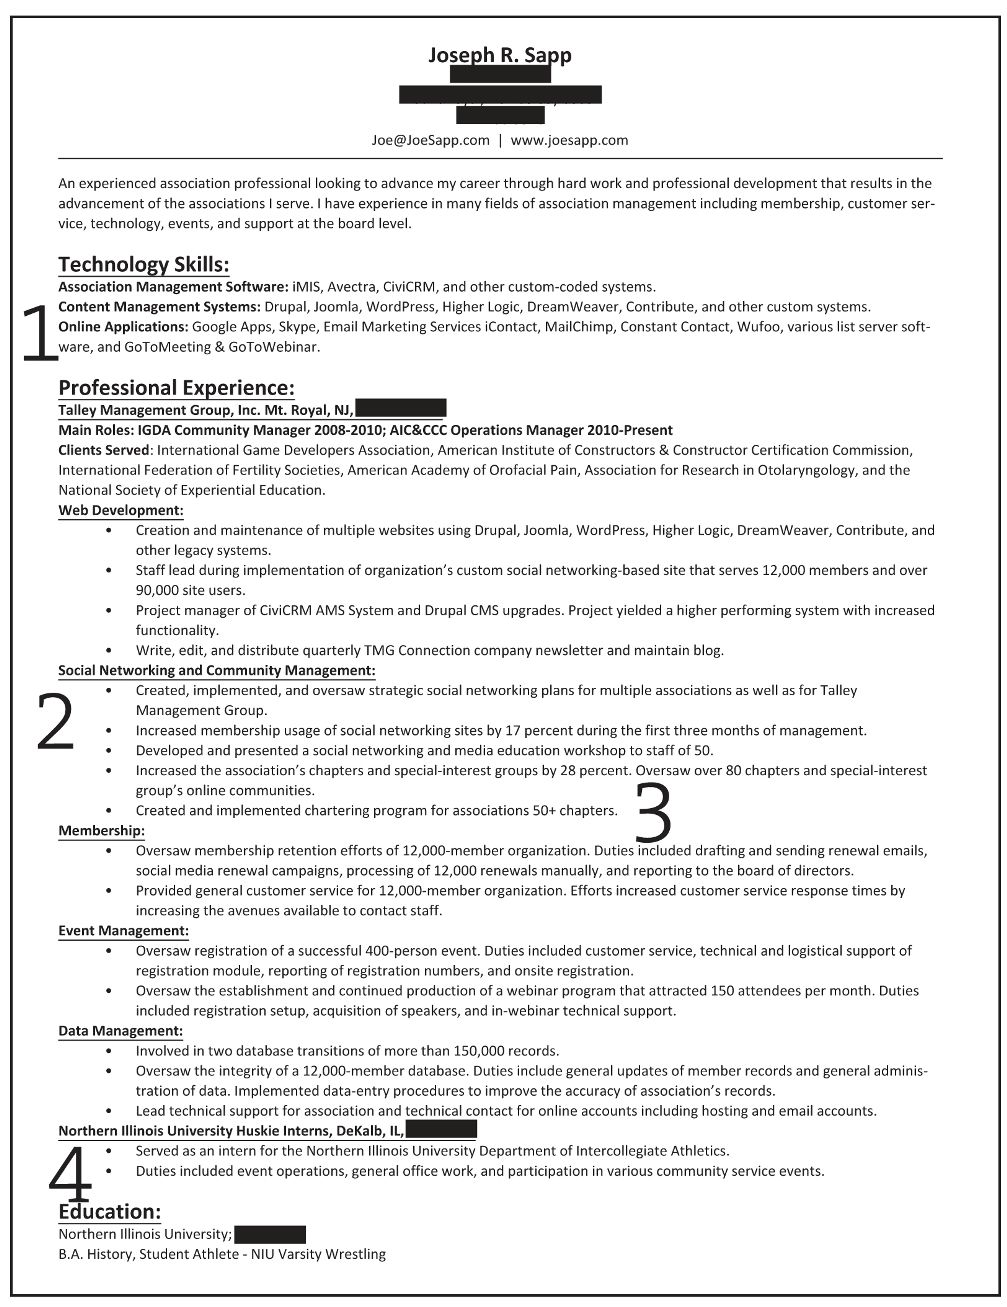 Professional Summary Resume Unique Resume Summary Resumes Example Professional Sample Business 2018